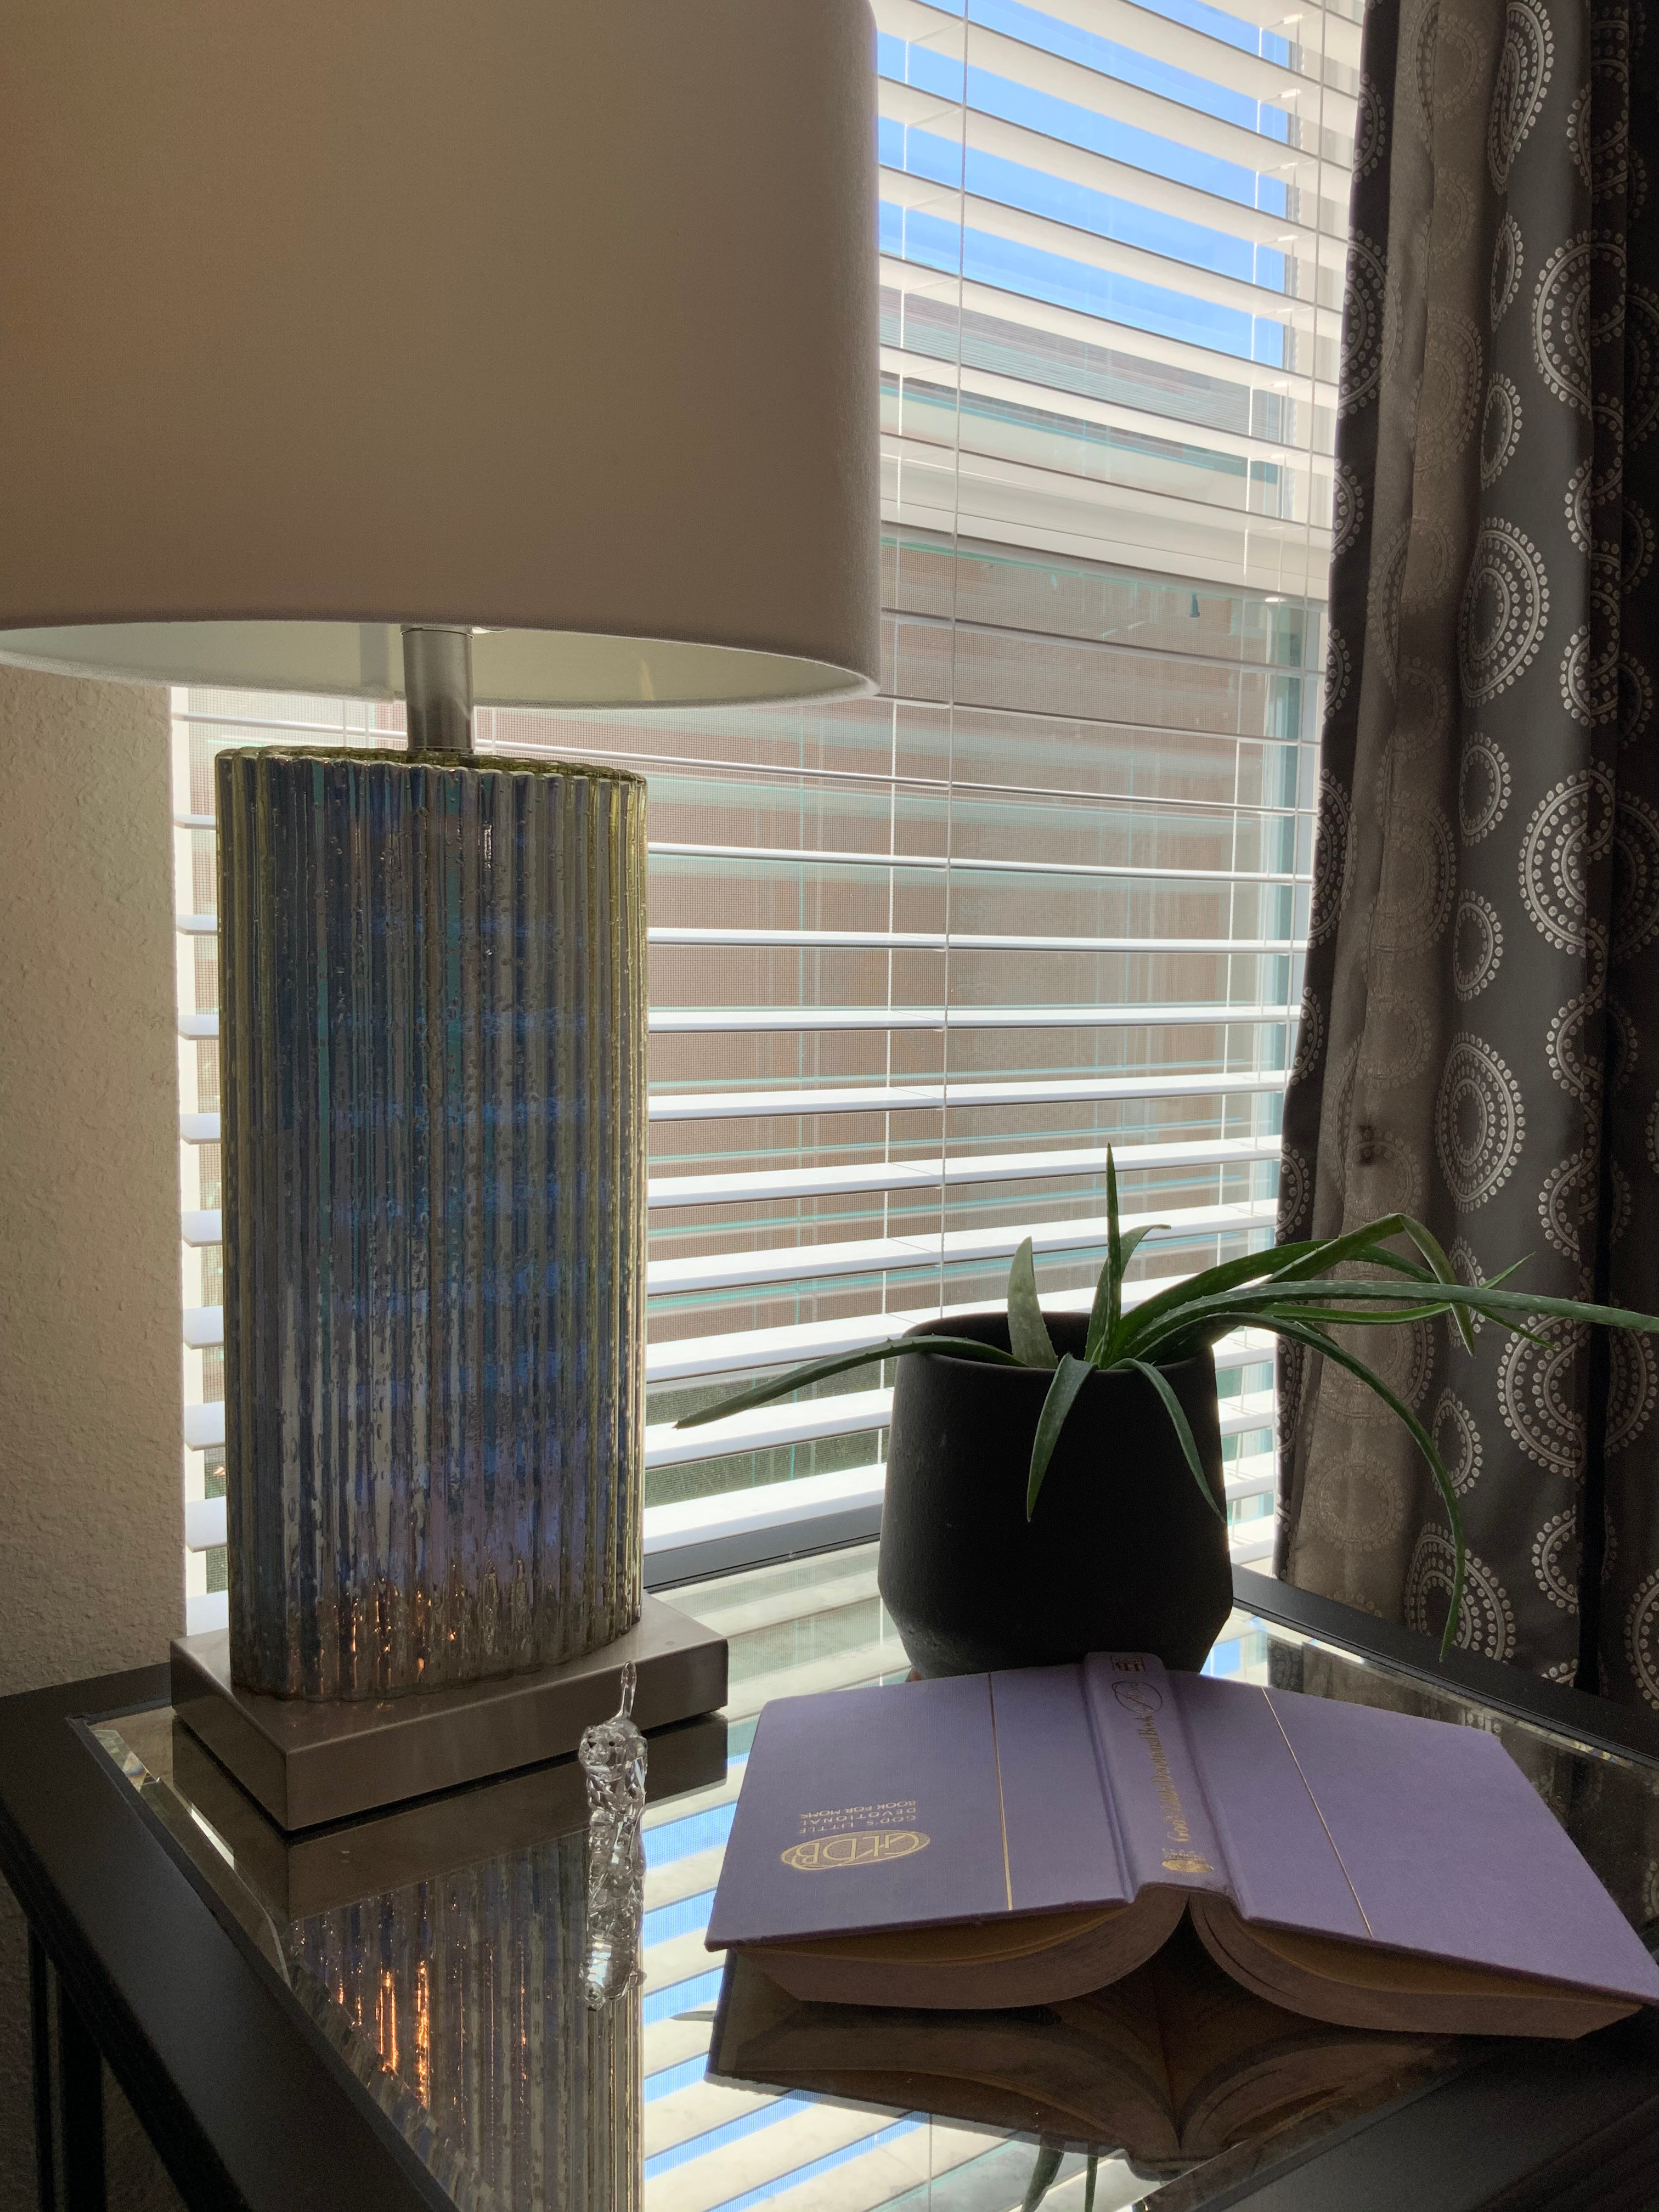 Owner-Occupied Home Staging